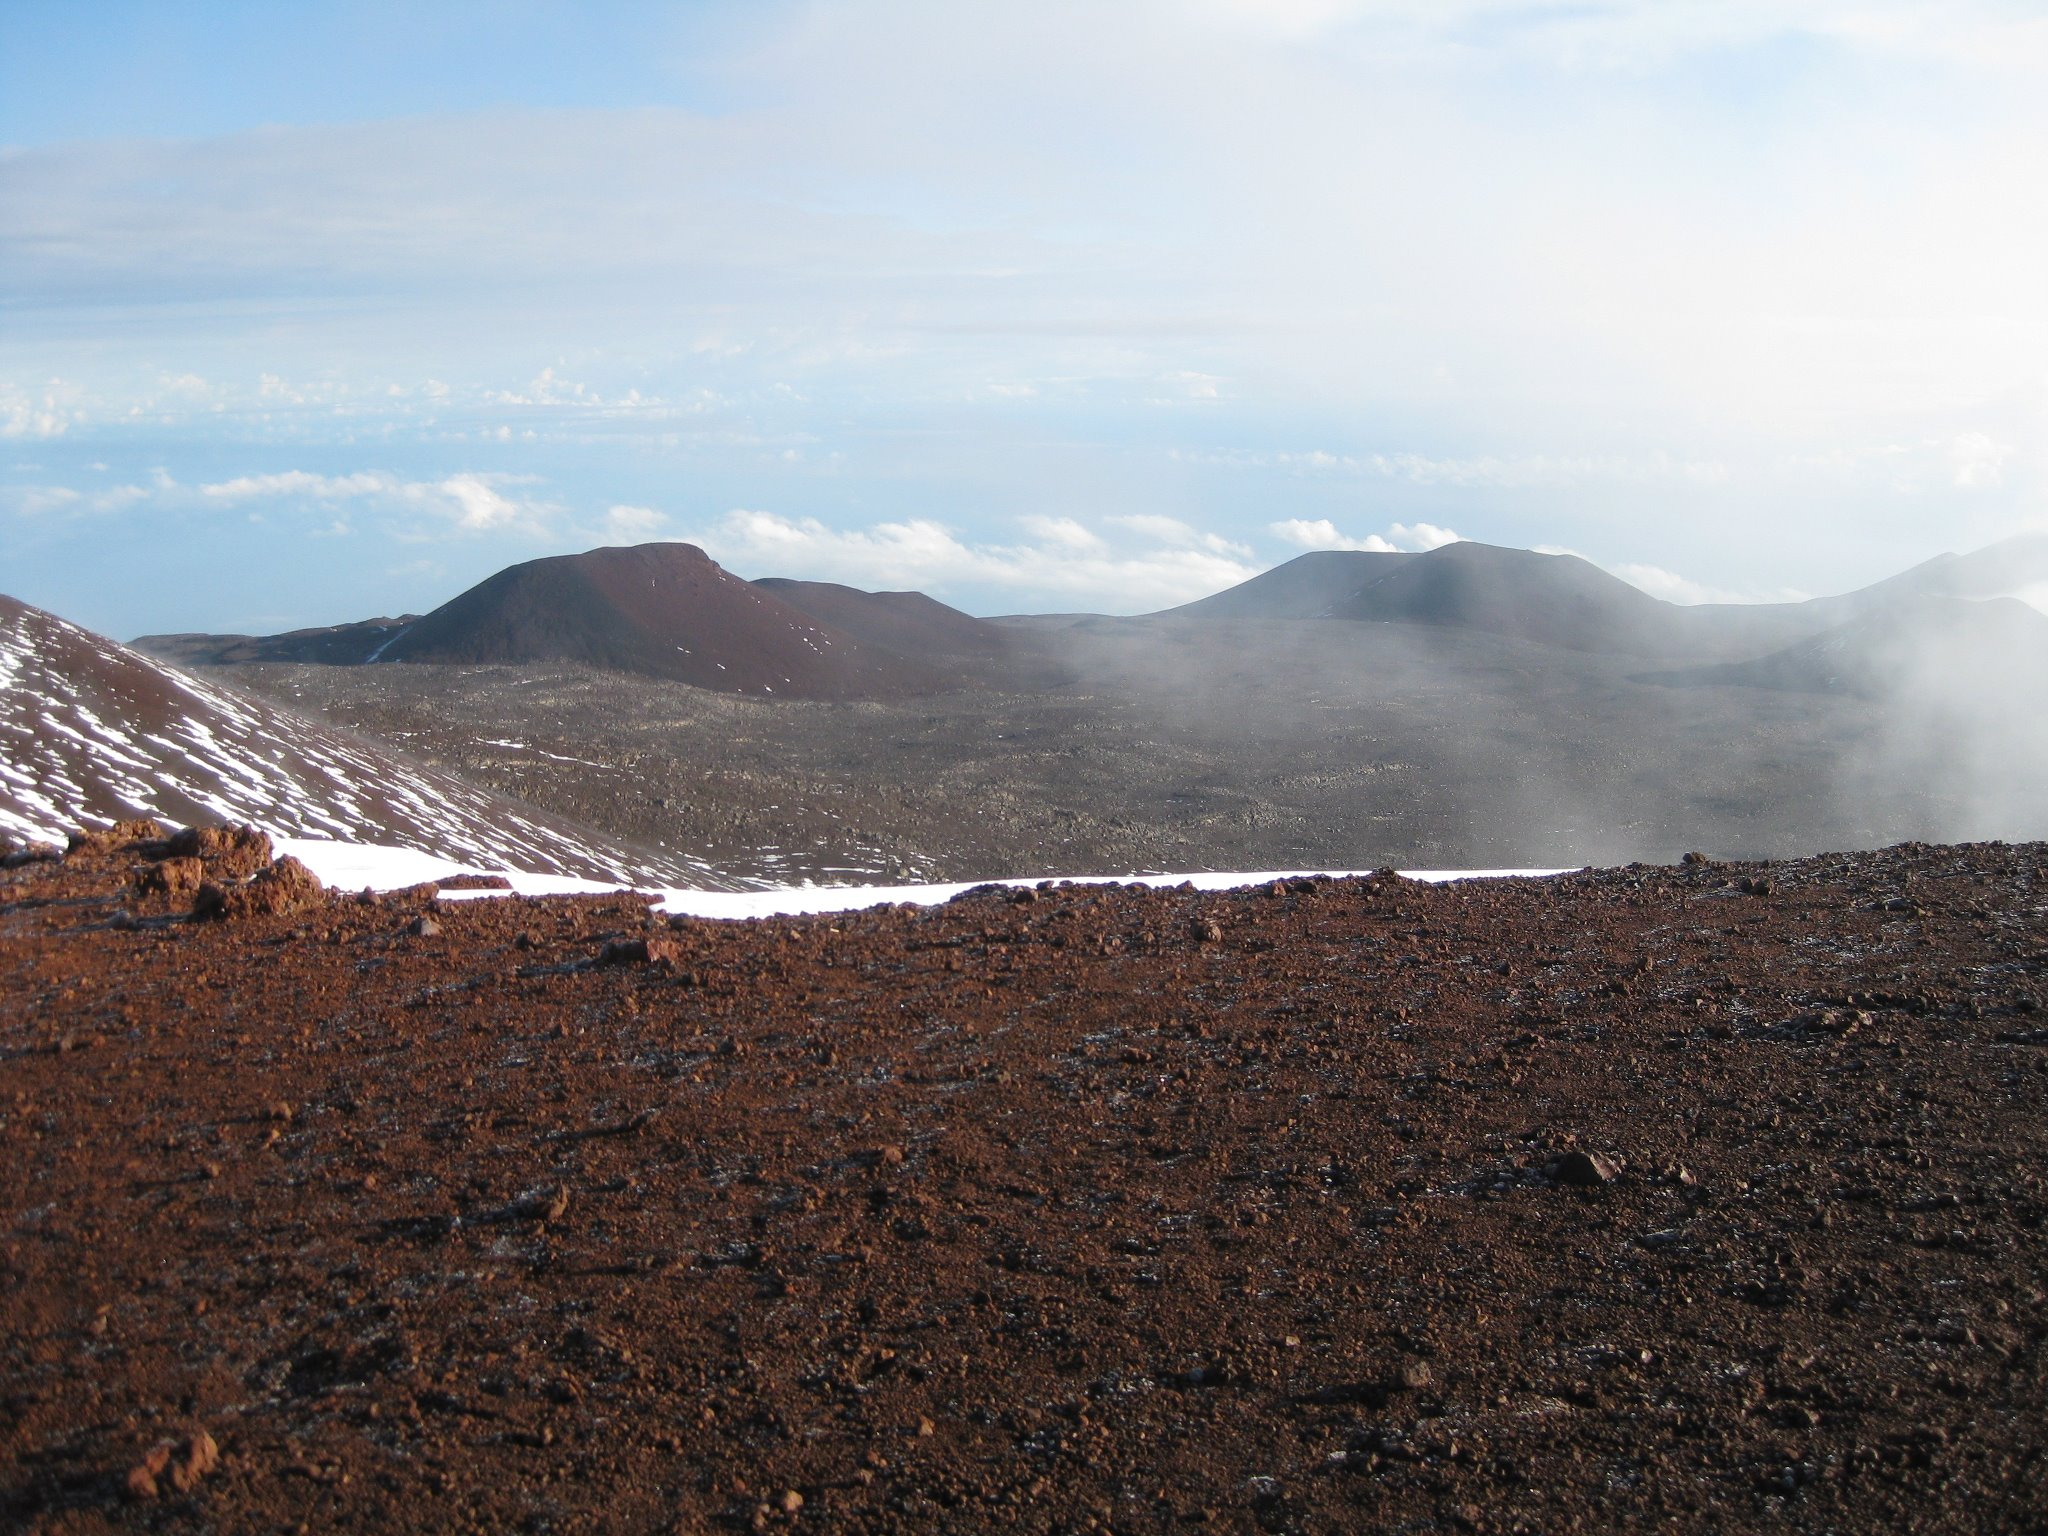 Native Hawaiians fight another telescope project on sacred ground